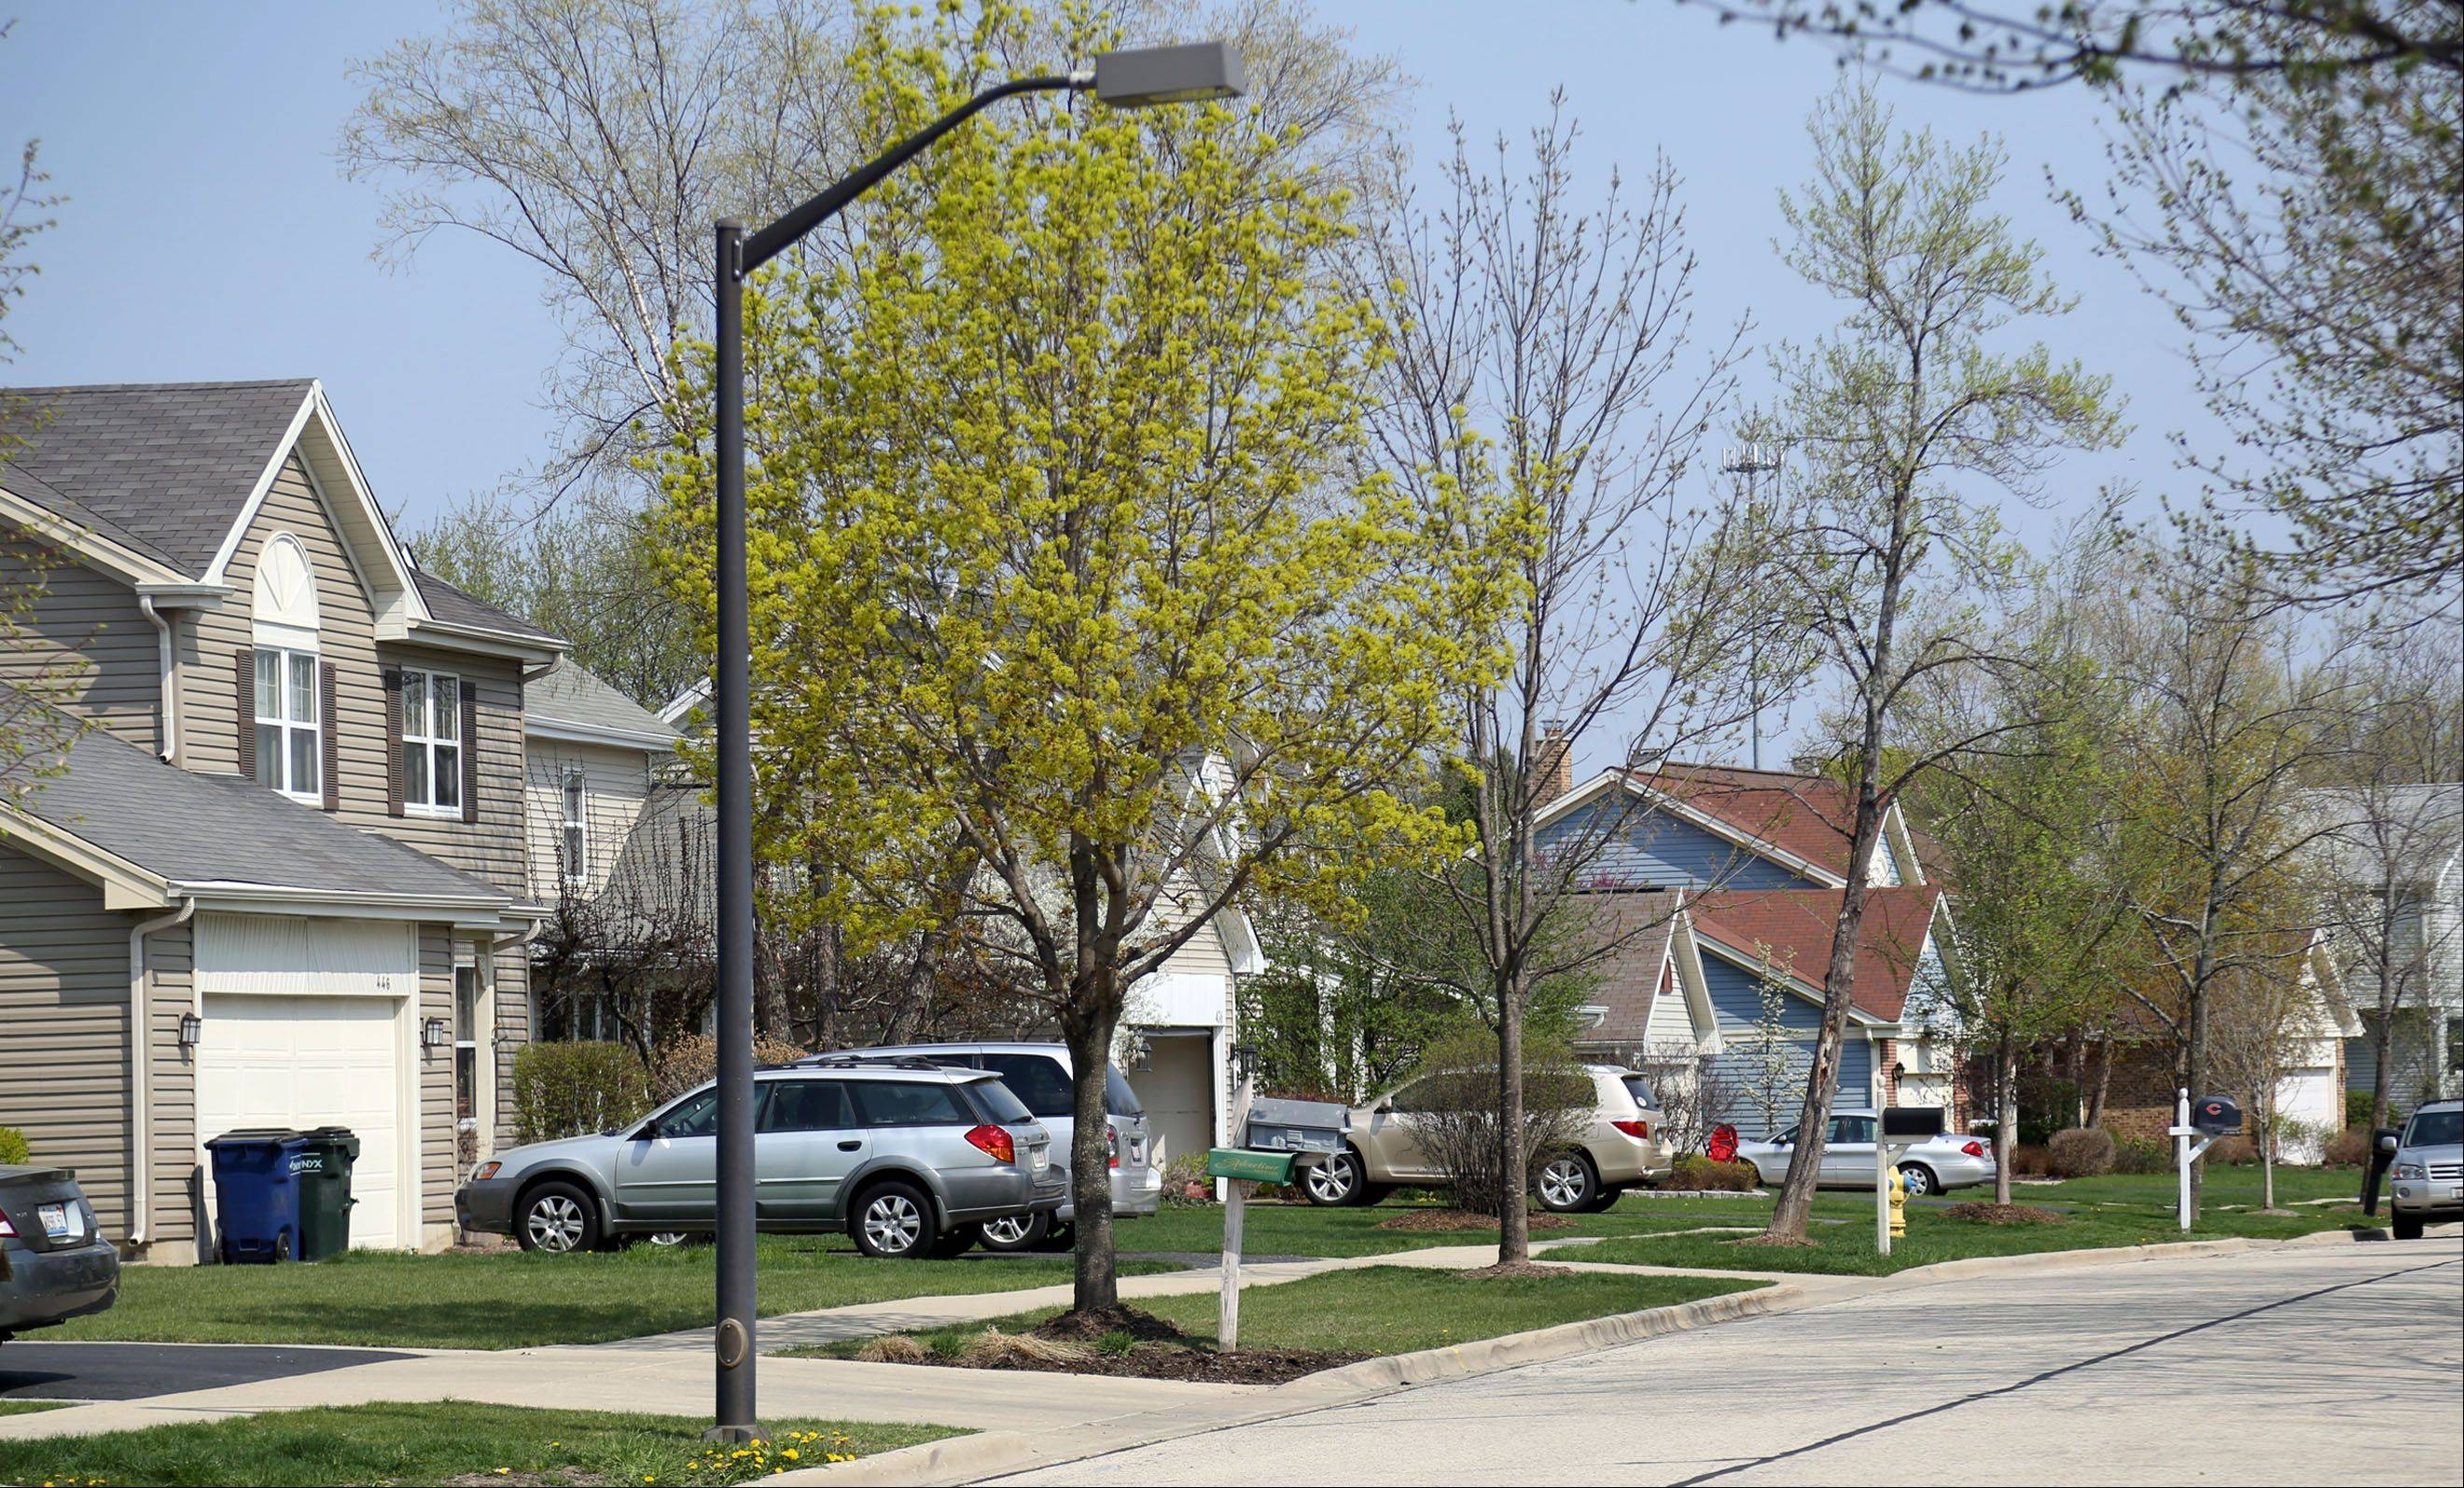 A close-knit community and good schools attract buyers to the Hawthorn Club neighborhood in Vernon Hills.